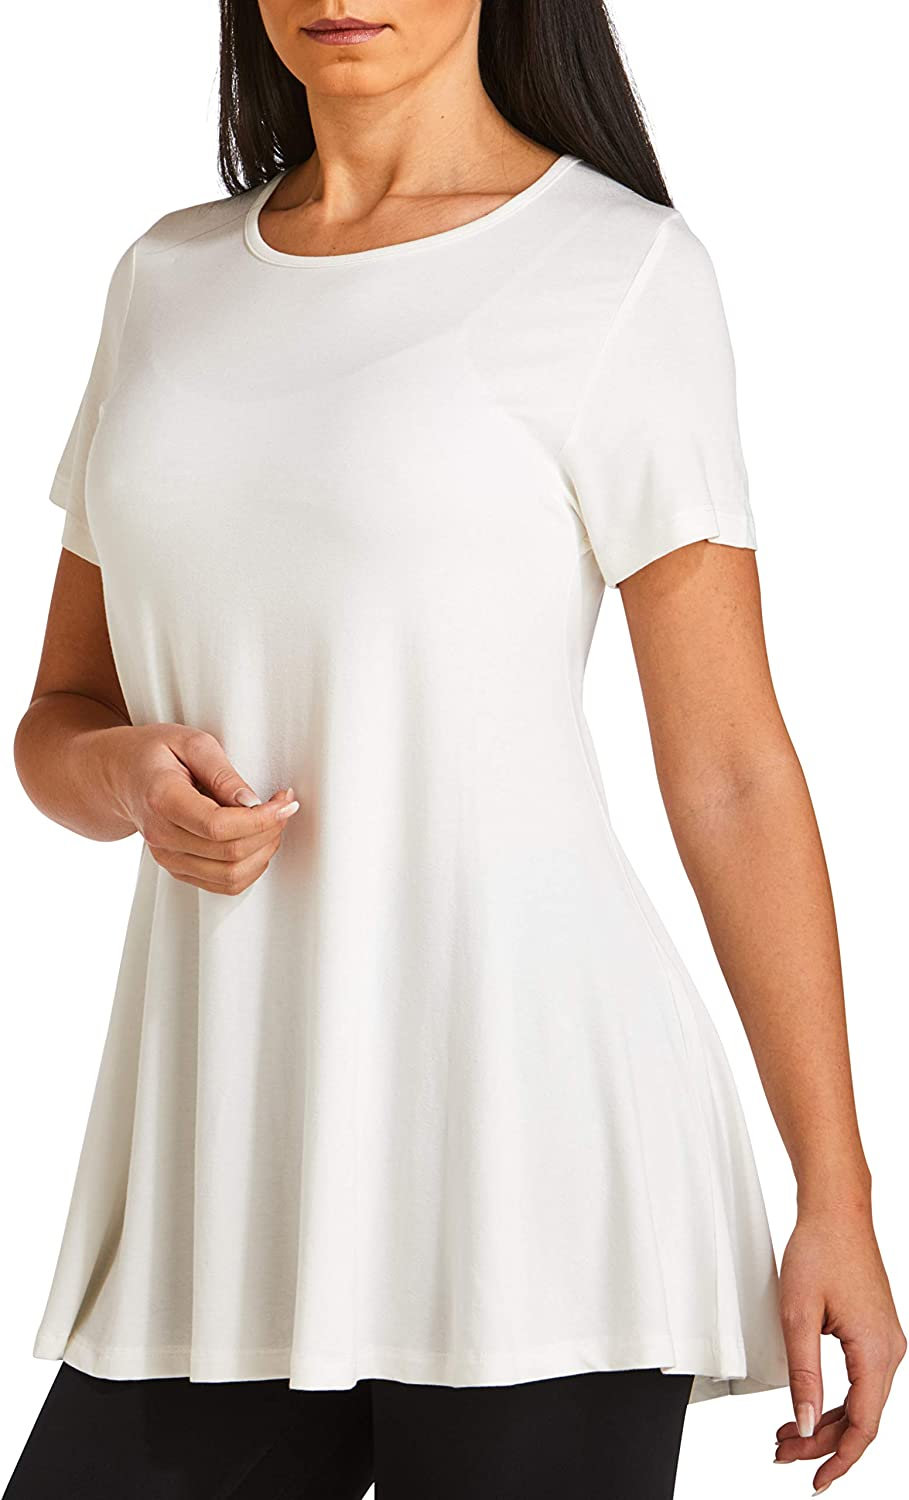 WEST ZERO TWO Women`s Tunic Tops Short Sleeve Loose Fit Flared